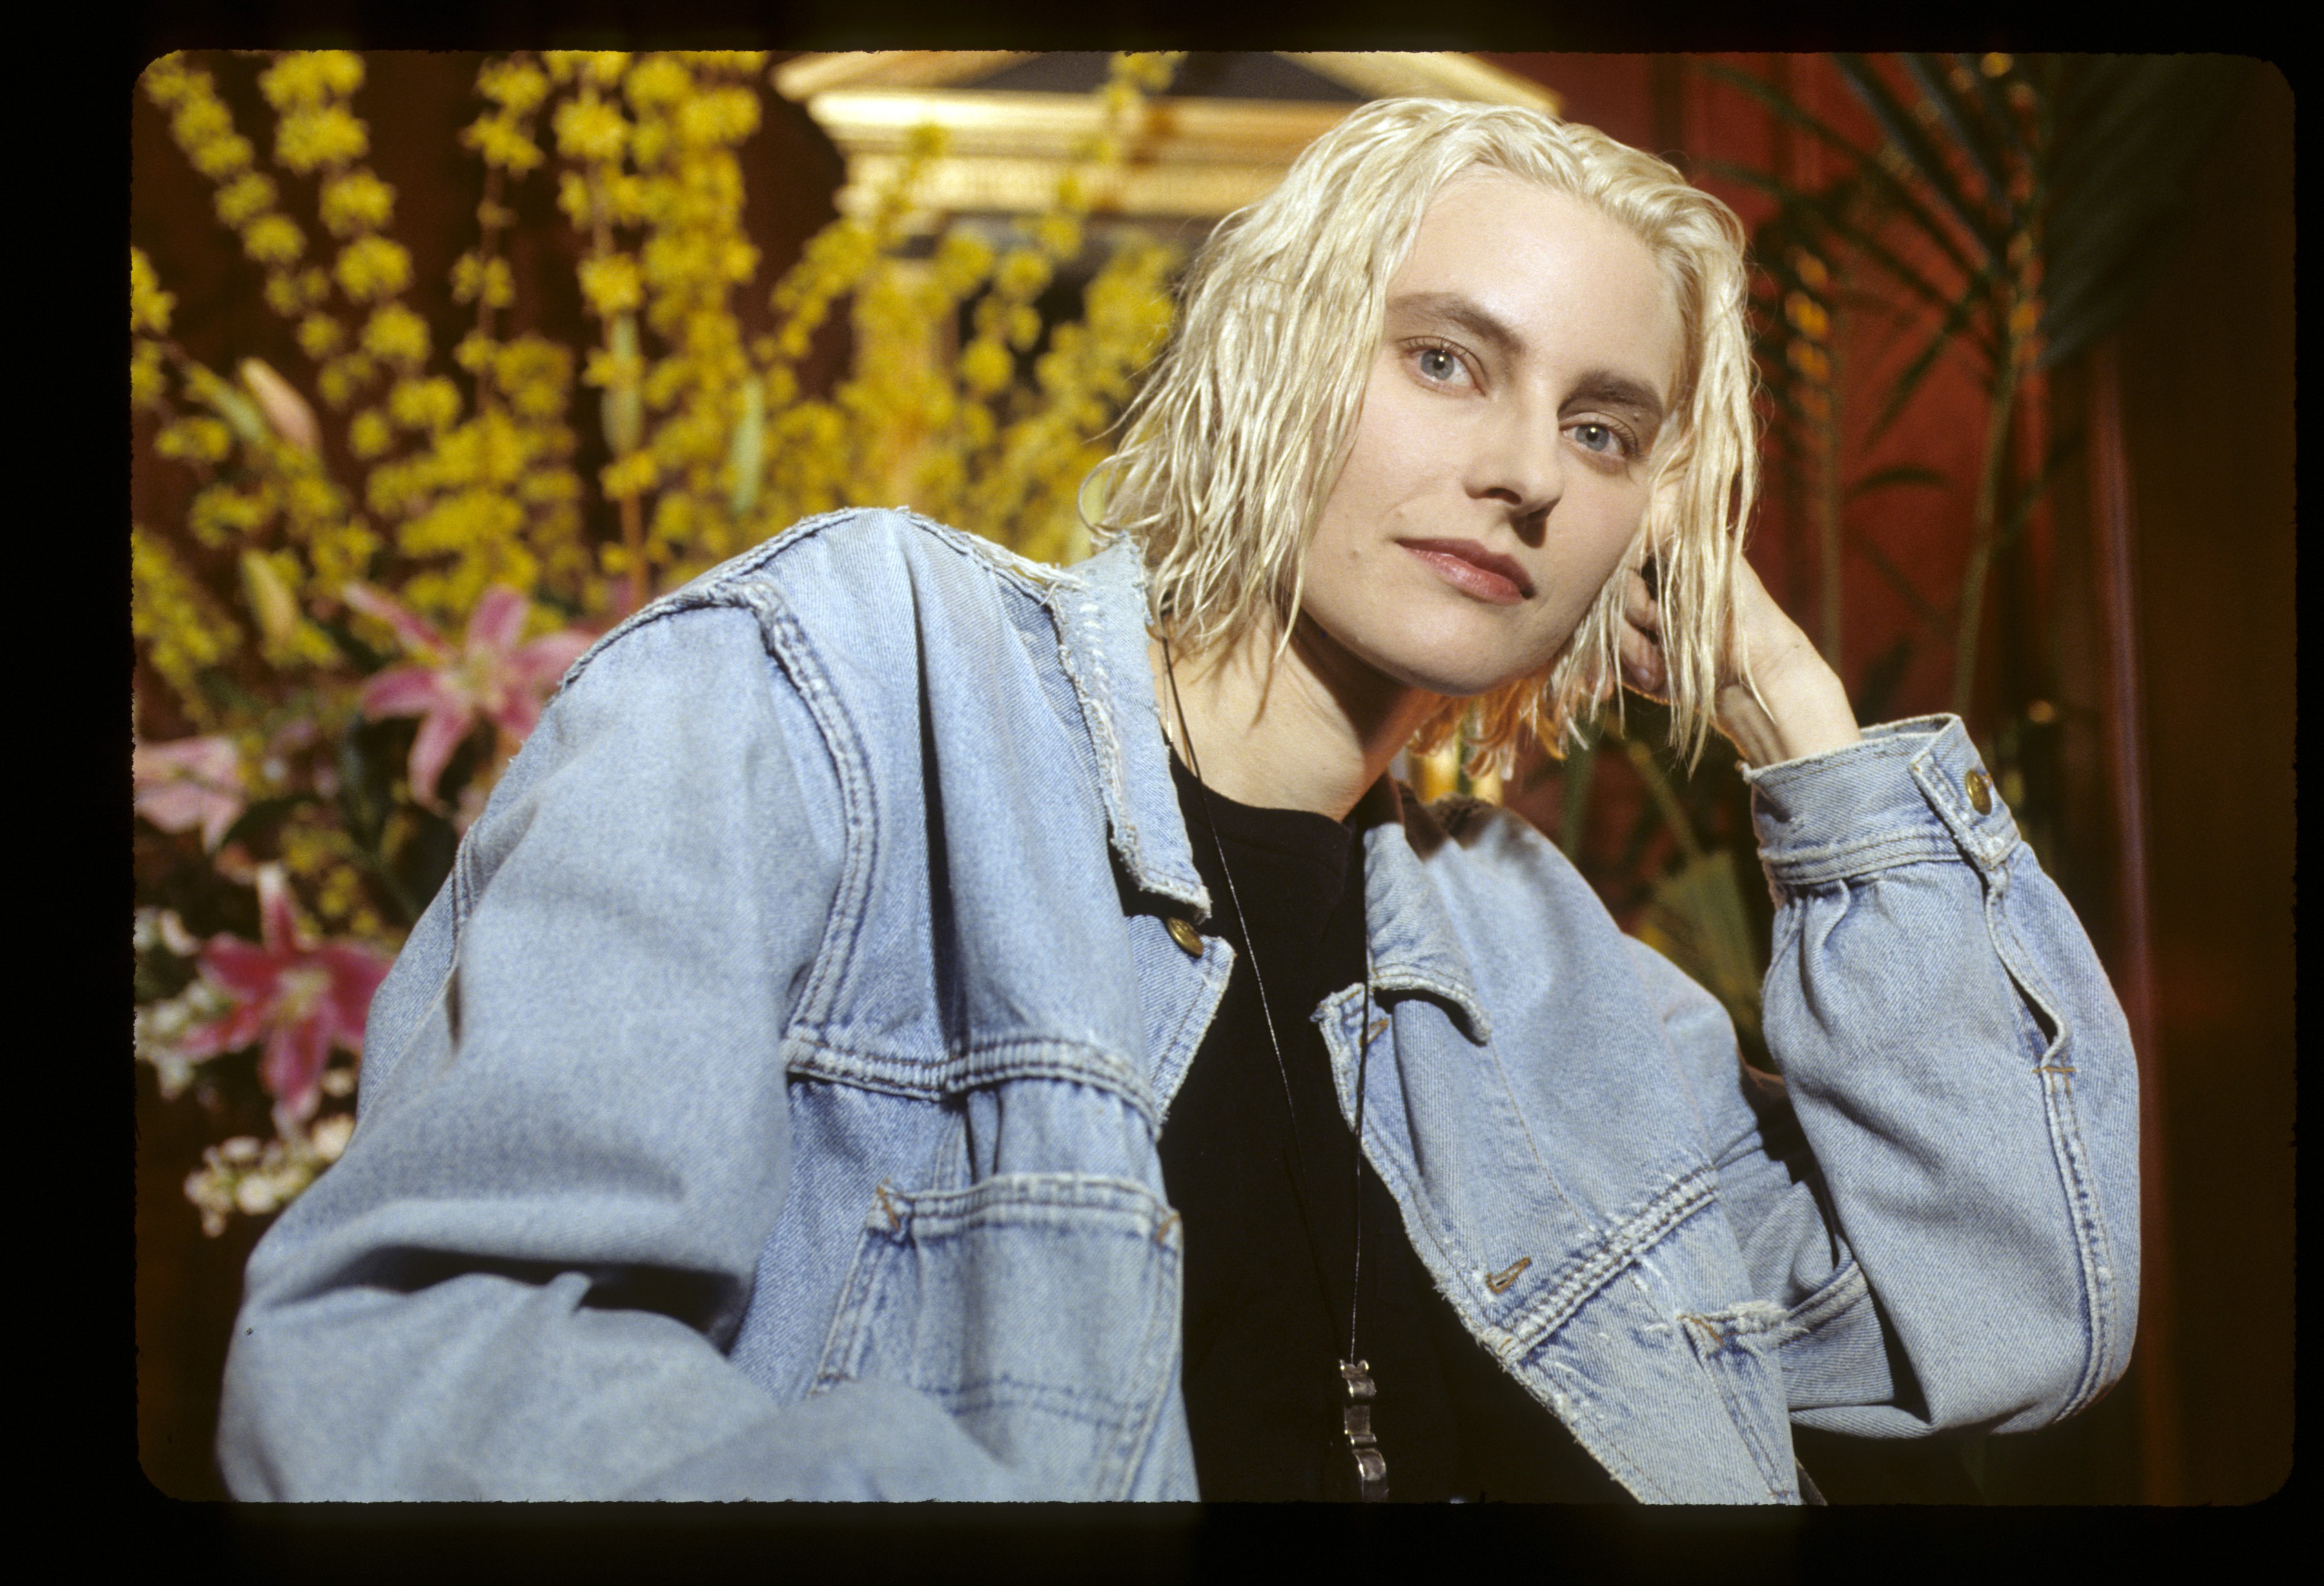 333737ee13496 'Til Today: 25 Years After Her Solo Debut, Aimee Mann Looks Back